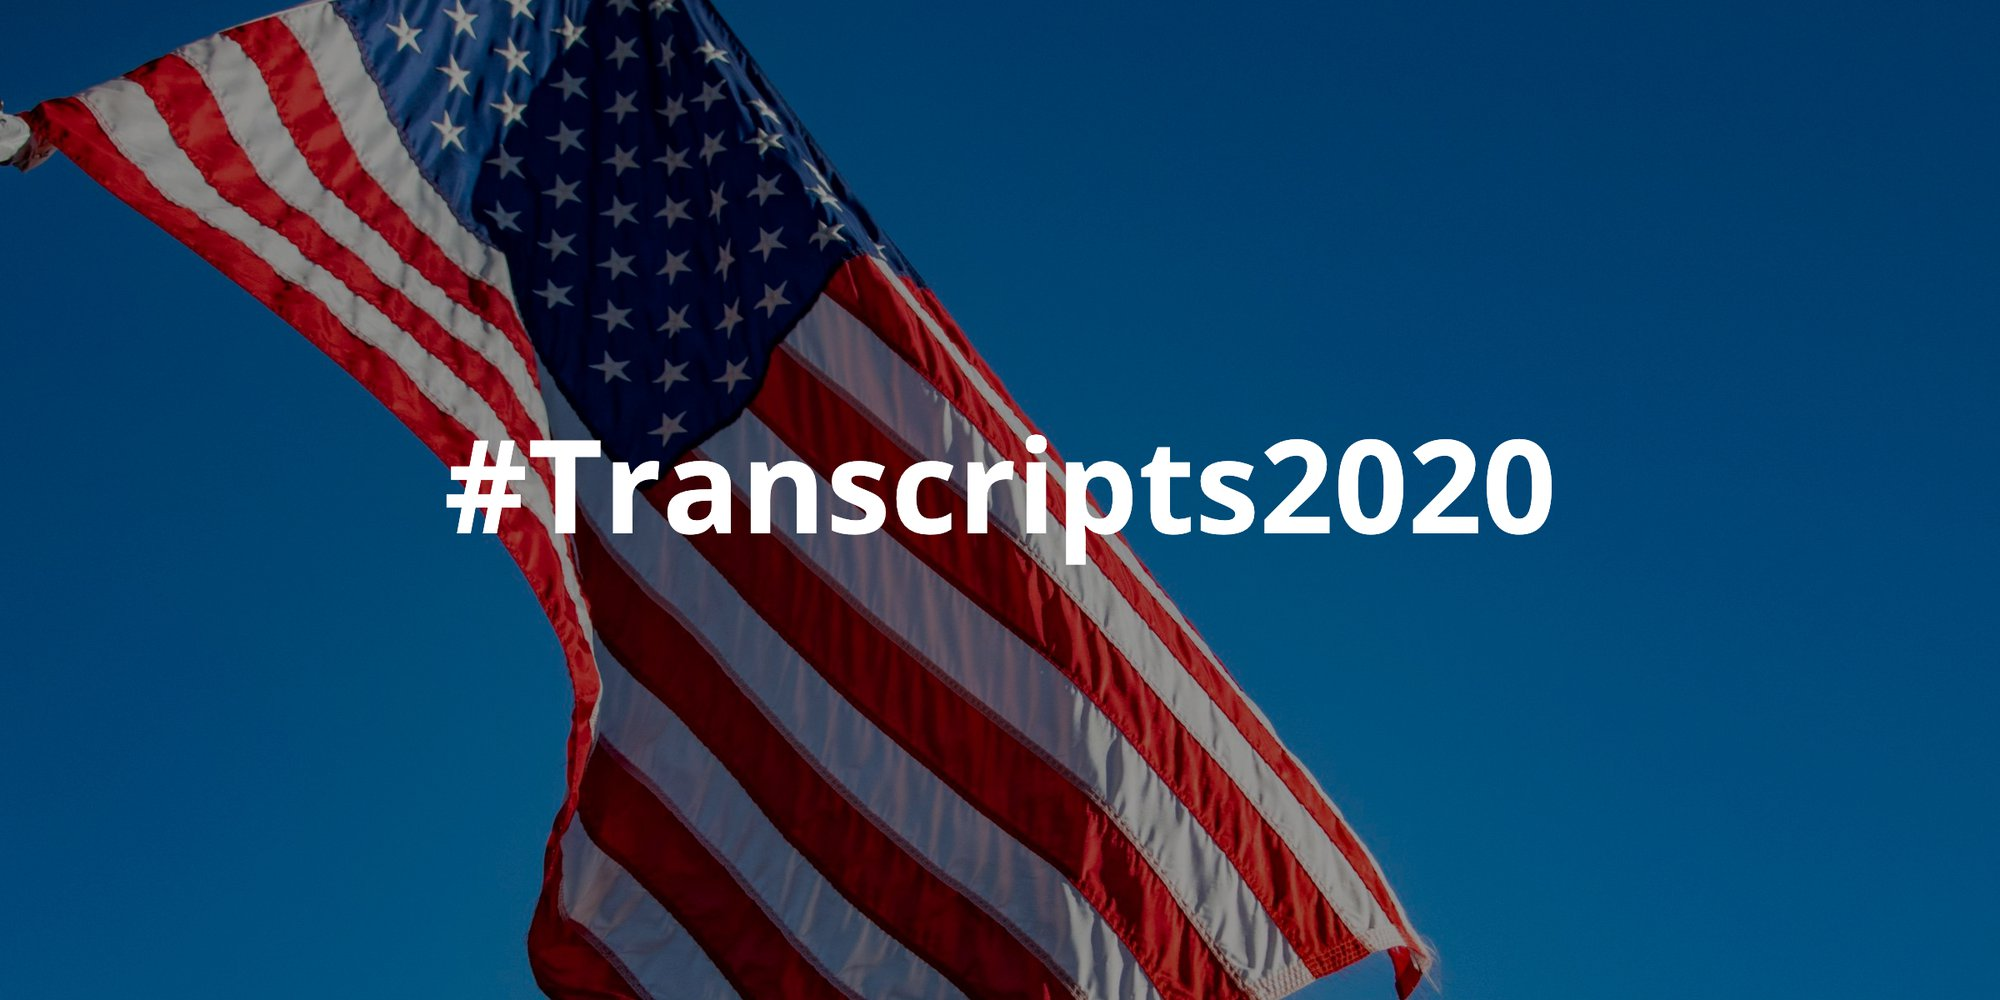 Announcing #Transcripts2020: Scribie's Transcription Initiative for the 2020 Presidential Elections